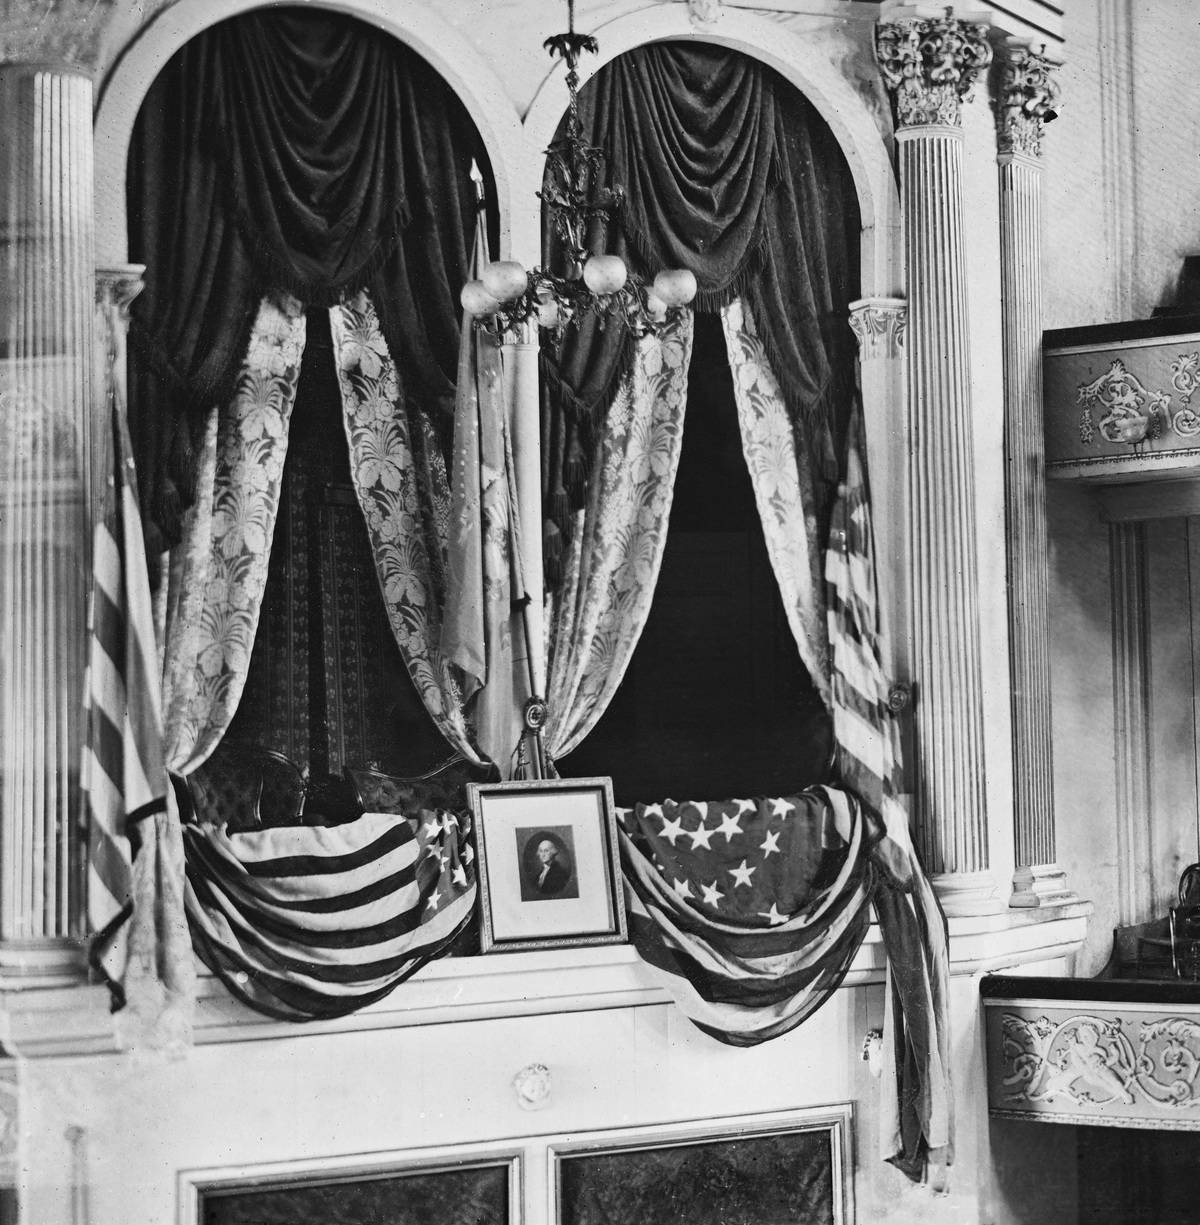 U.S. President Abraham Lincoln's Box at Ford's Theater, Washington DC, USA, April 1865